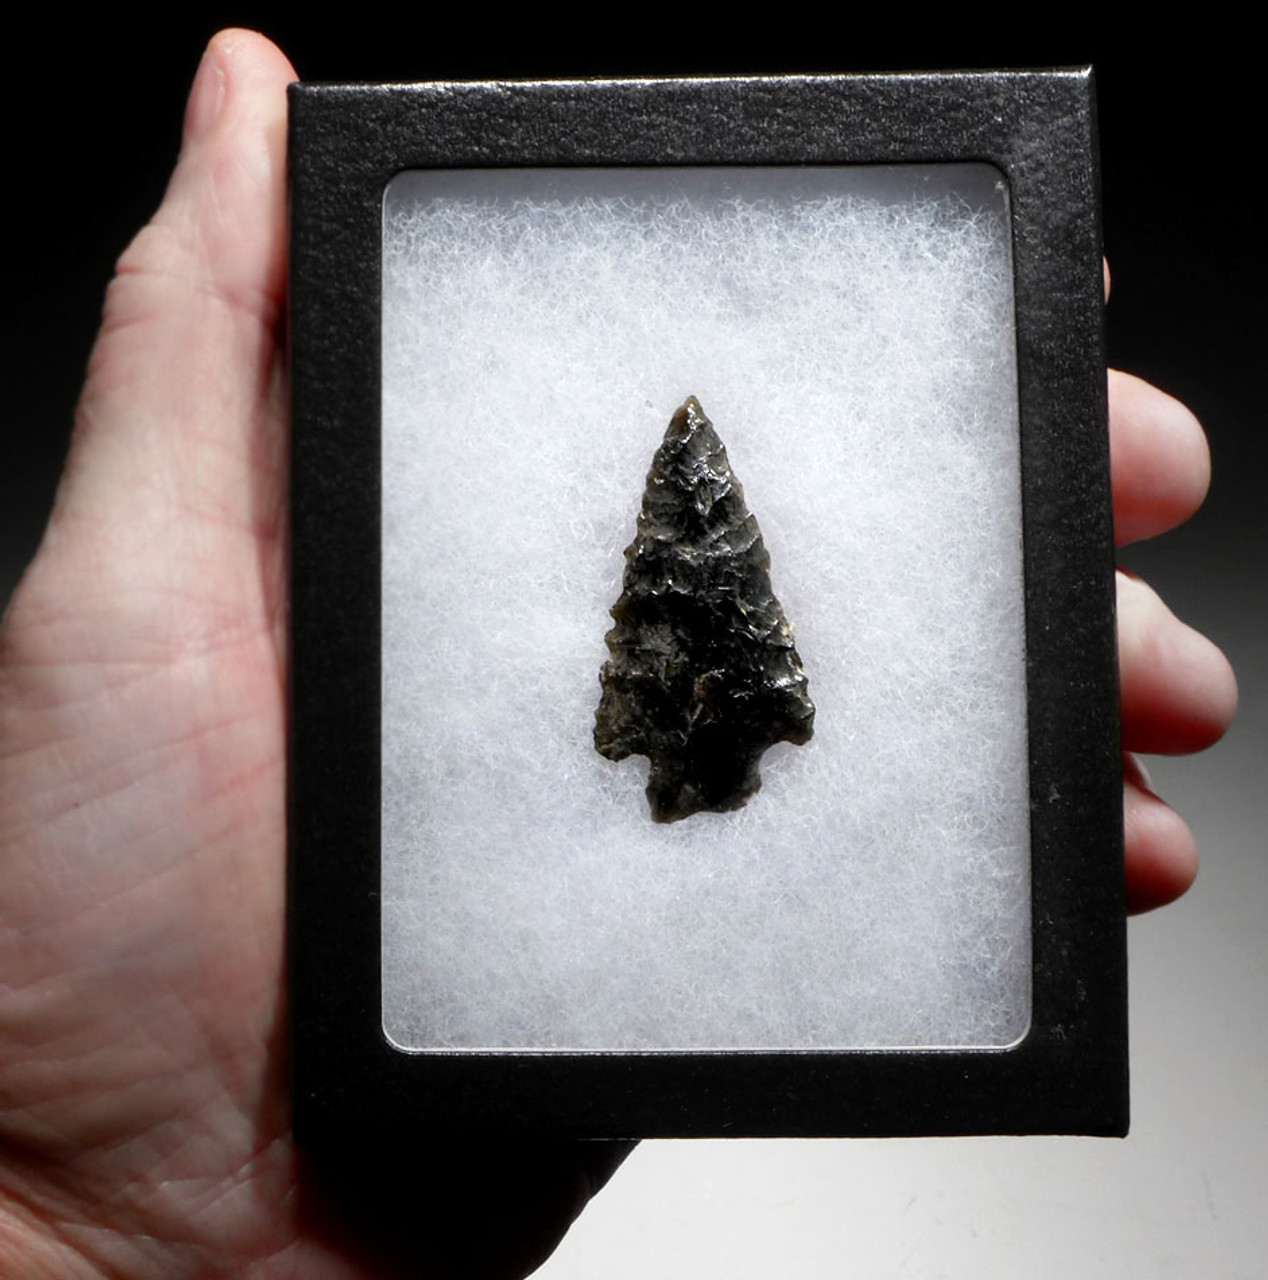 FINEST TRIANGULAR PRE-COLUMBIAN OBSIDIAN ATLATL SPEARHEAD FROM THE HEFLIN COLLECTION * PC289